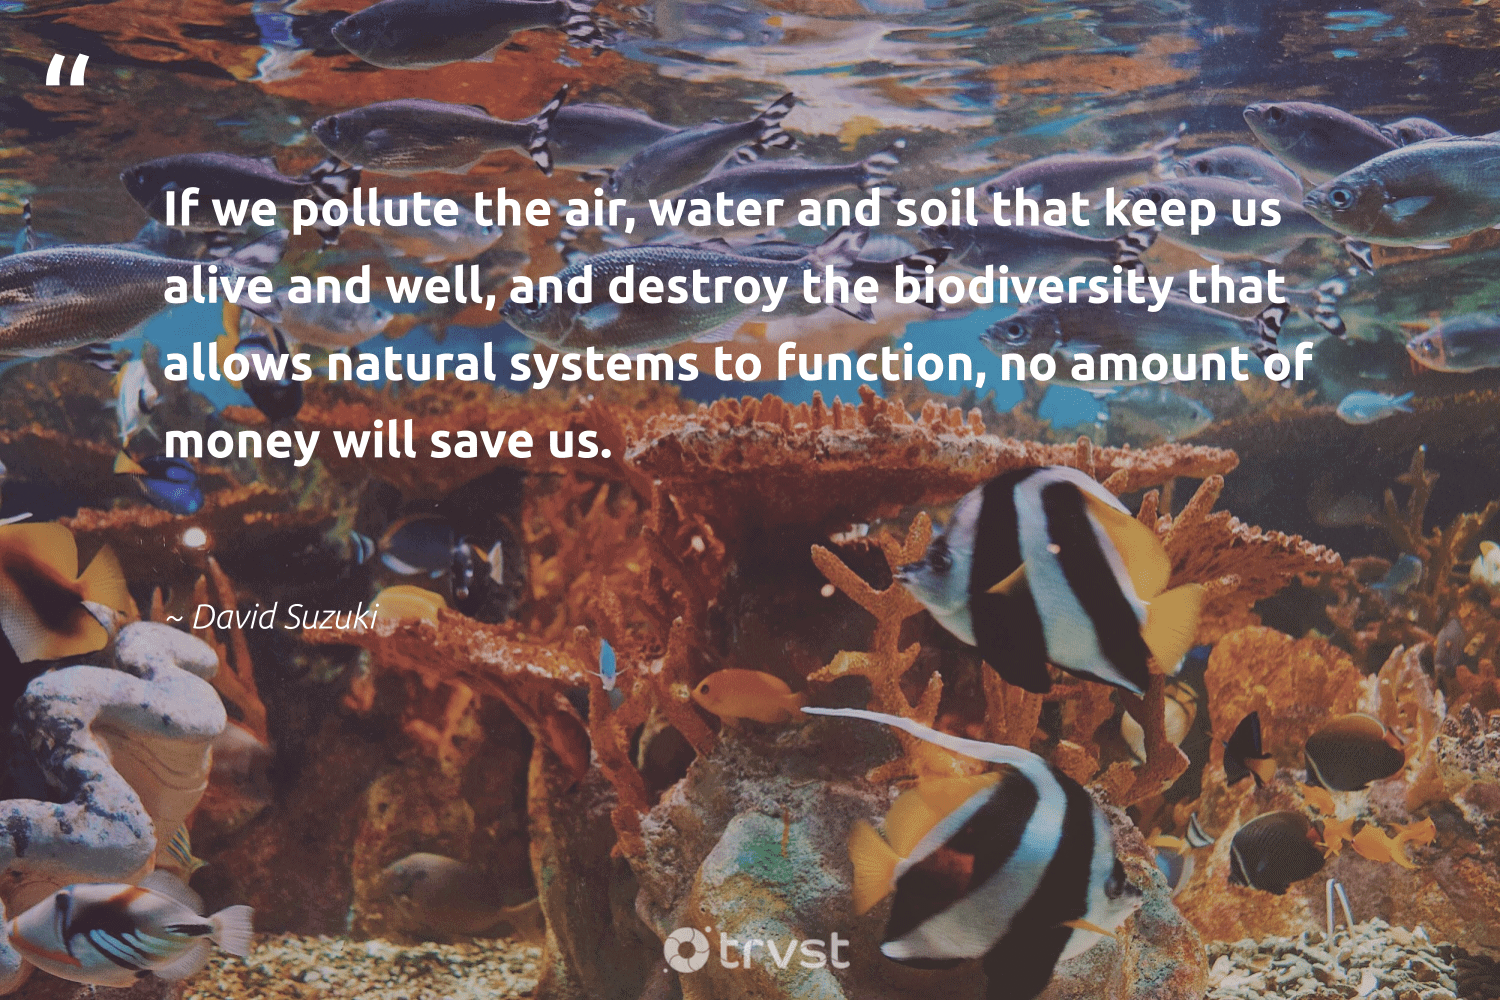 """""""If we pollute the air, water and soil that keep us alive and well, and destroy the biodiversity that allows natural systems to function, no amount of money will save us.""""  - David Suzuki #trvst #quotes #water #pollute #natural #biodiversity #spill #insects #noplanetb #bethechange #pollution #sanctuary"""